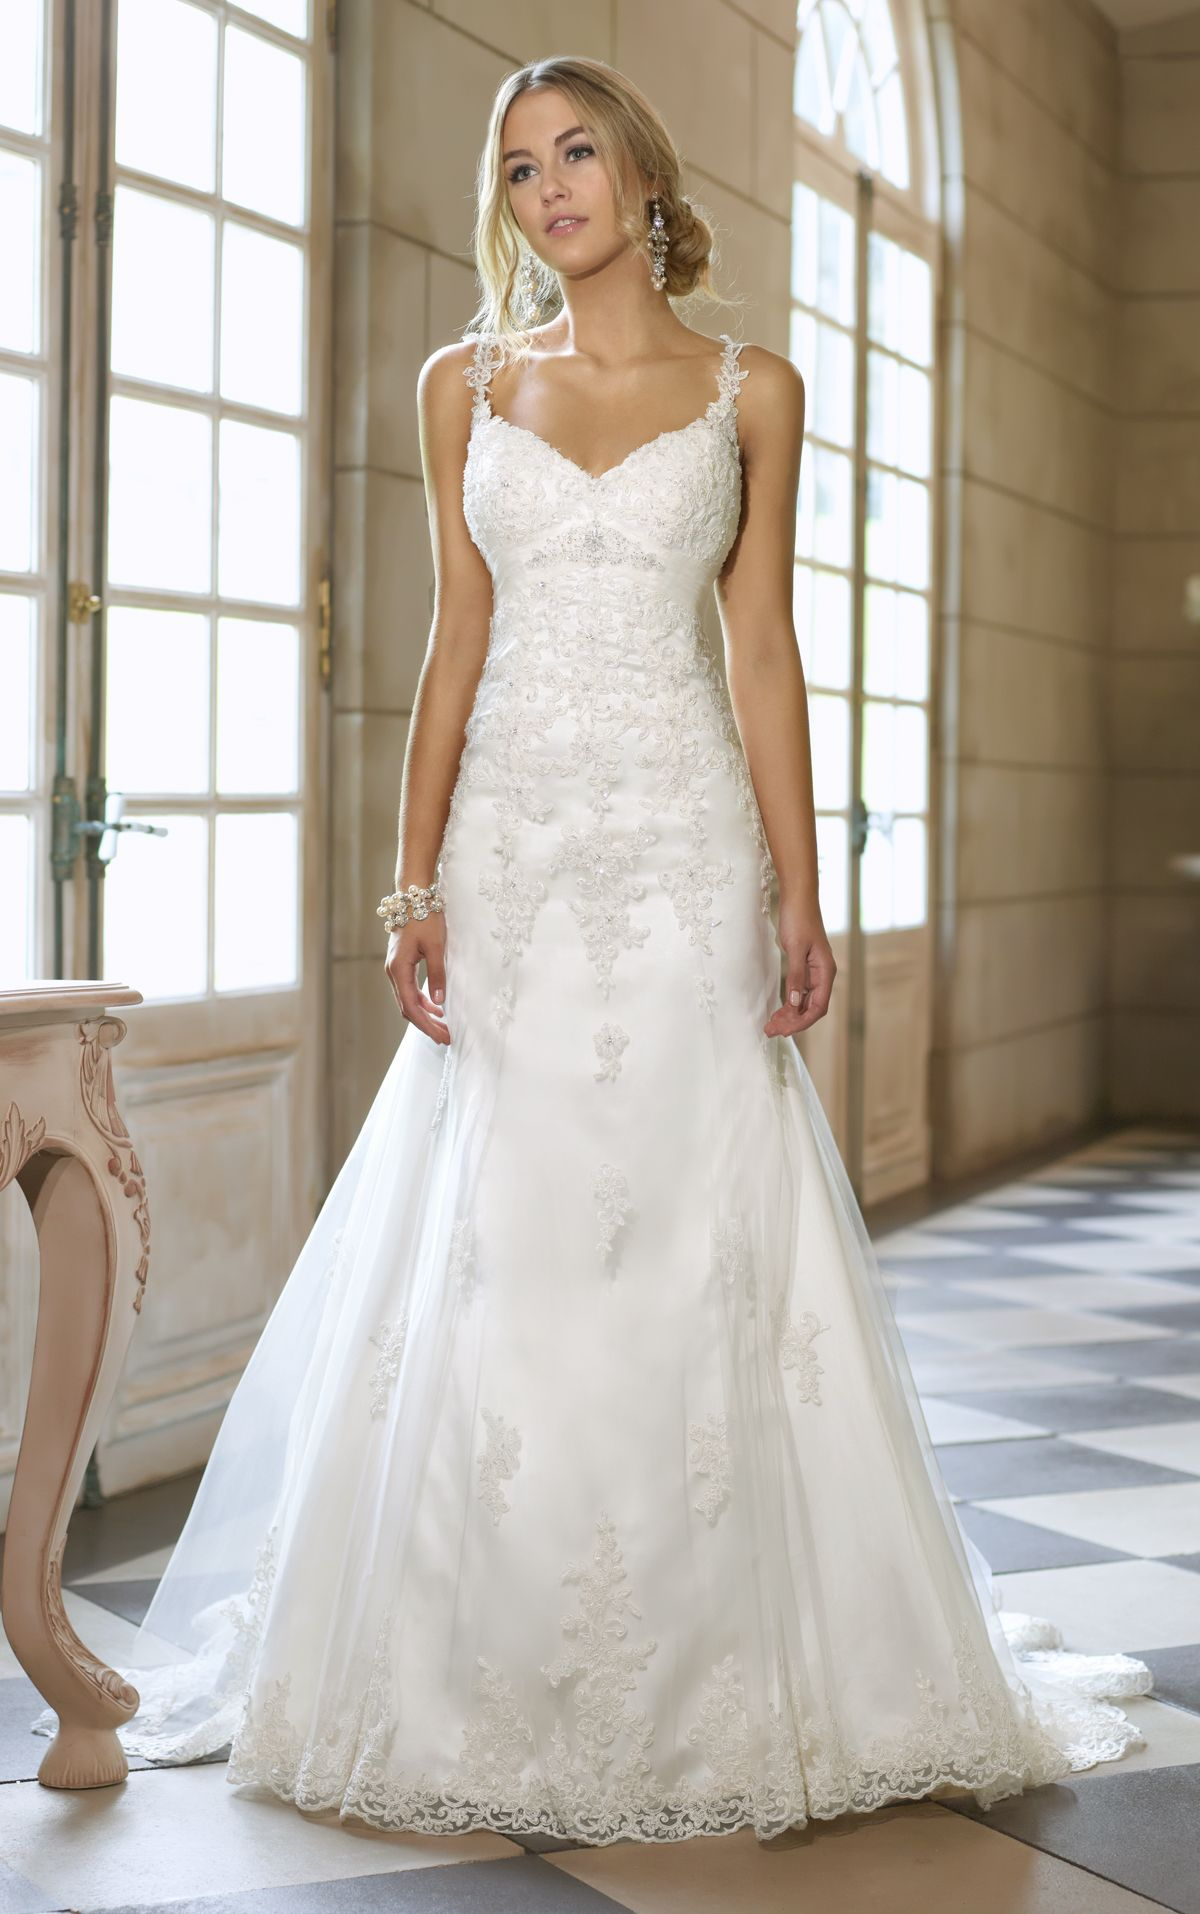 Designer wedding dresses bridal dresses stella york and gowns designer wedding dresses ombrellifo Choice Image